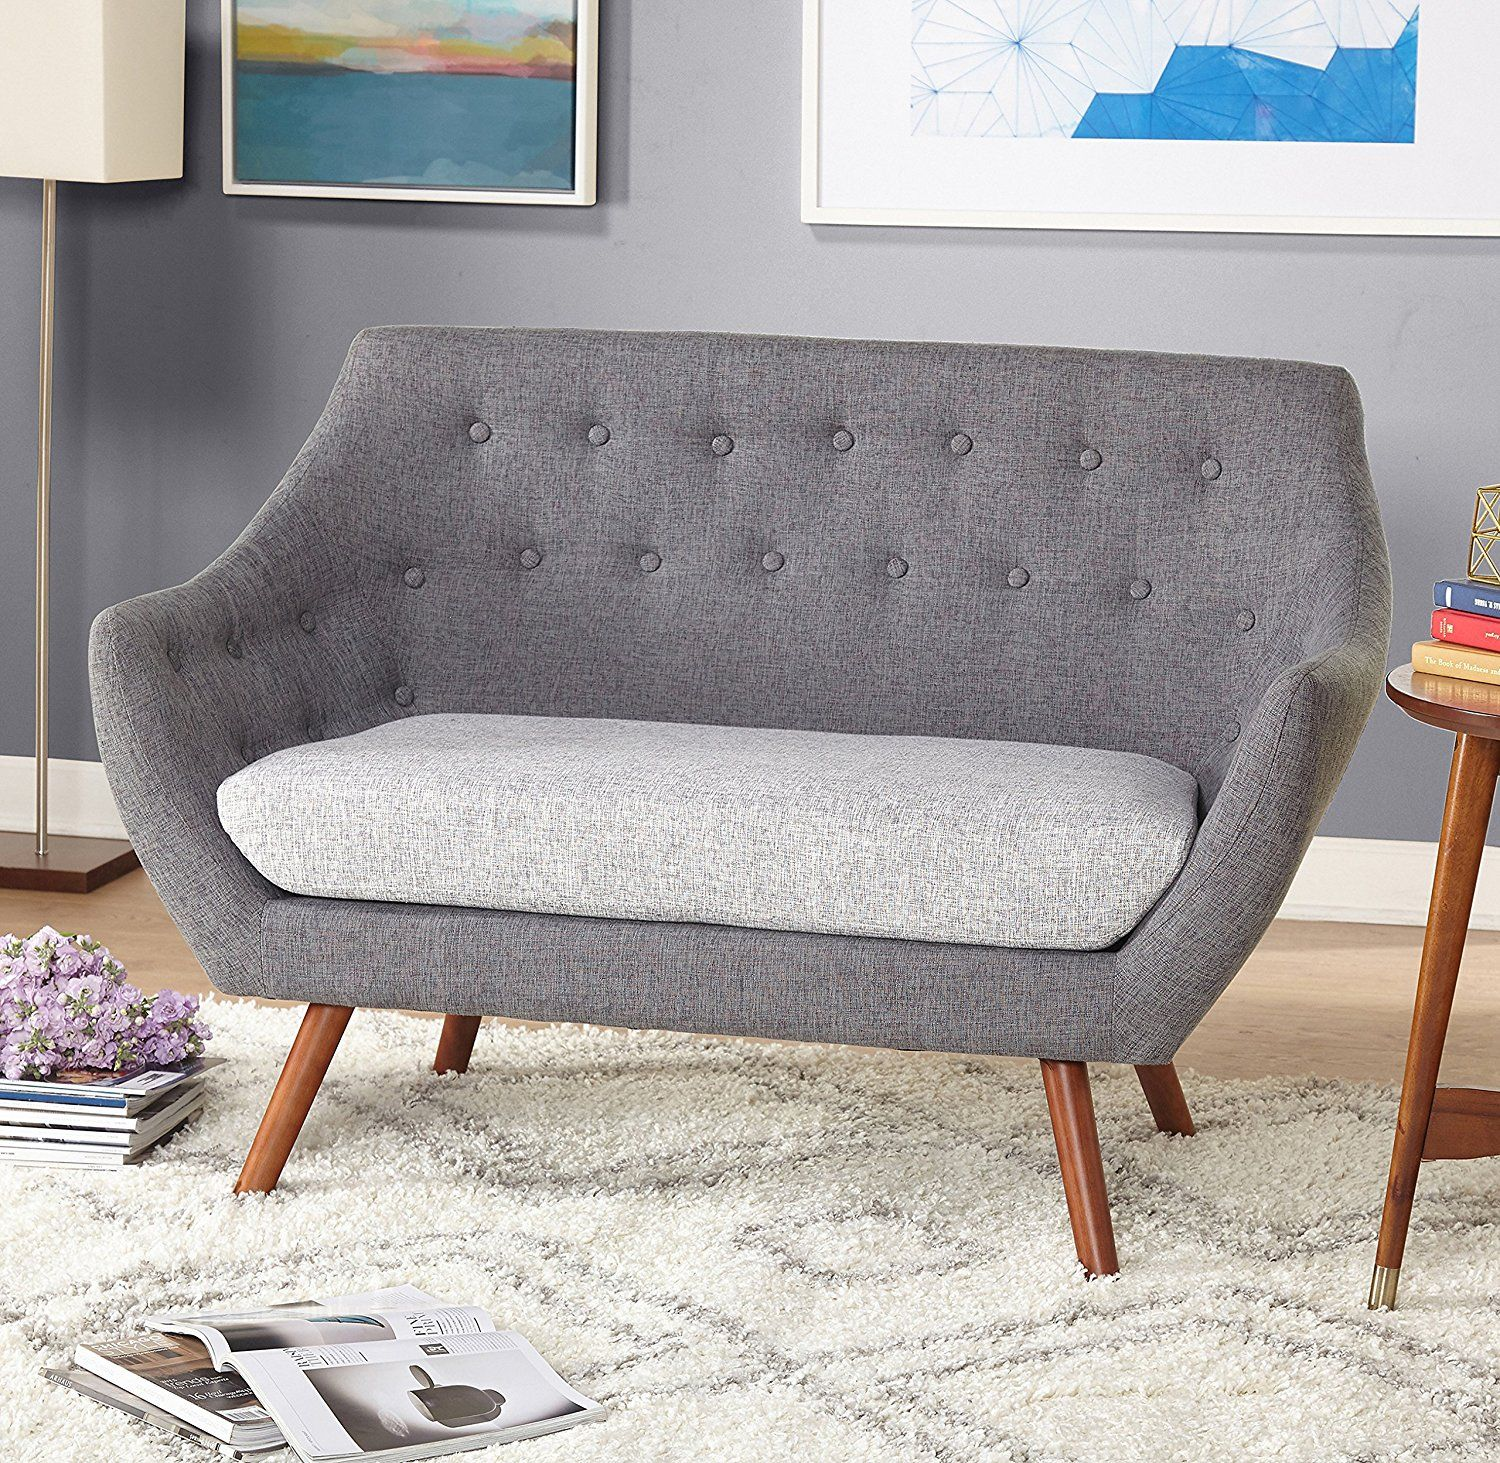 Image of: 14 Stylish Loveseats For Small Space Dwellers And Cuddlers Living In A Shoebox